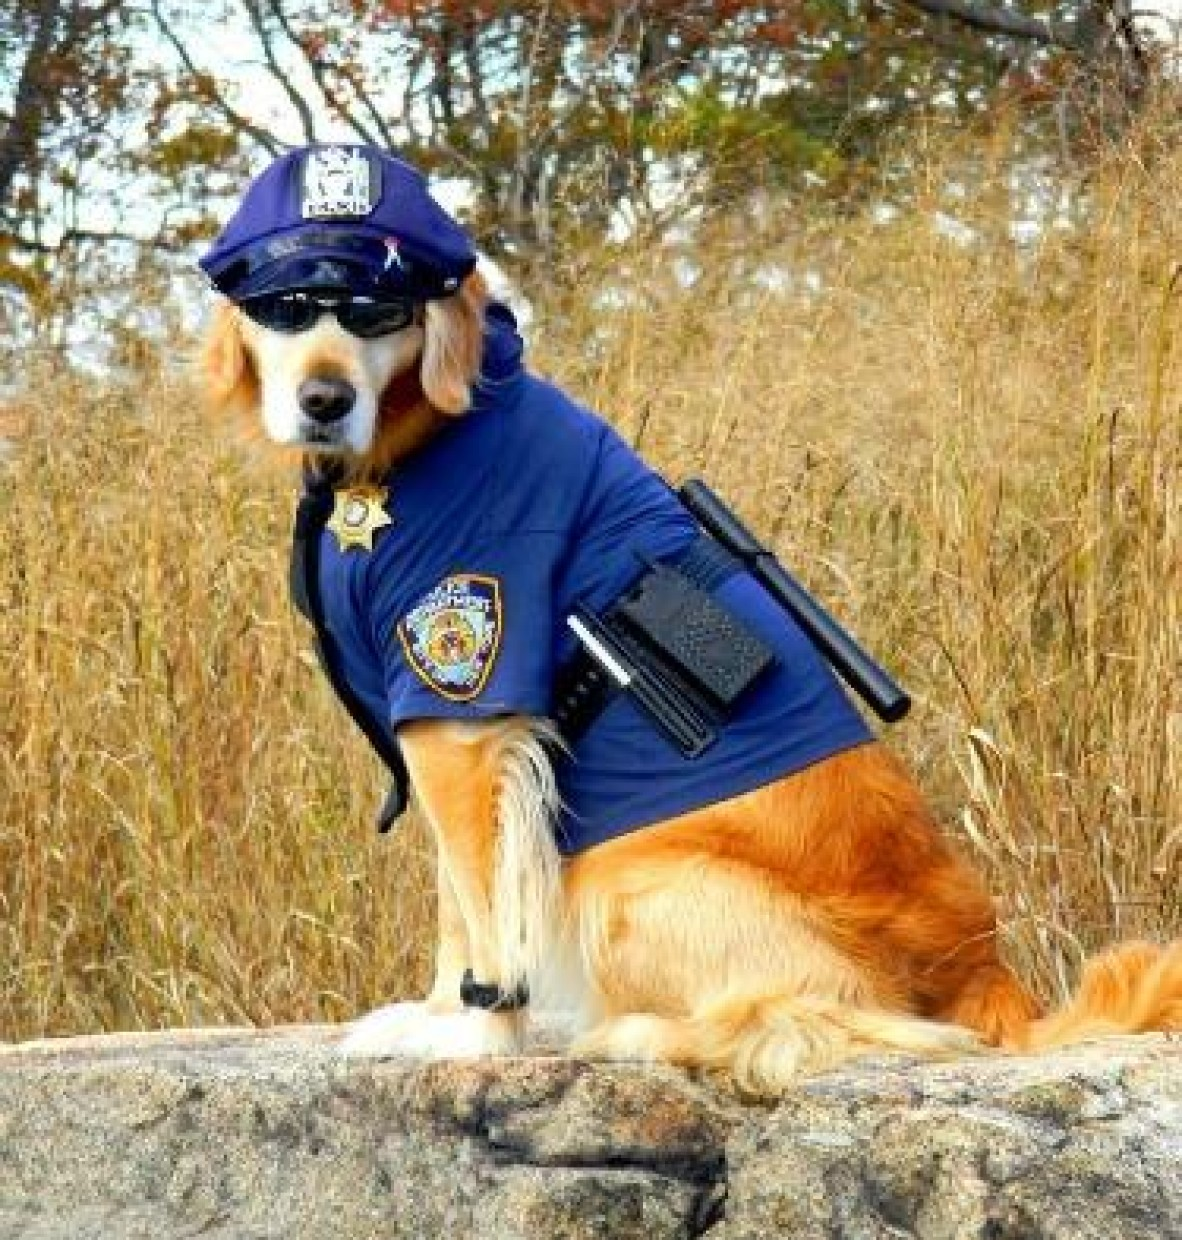 Head of NYU Public Safety Revealed to Be Very Clever Golden Retriever